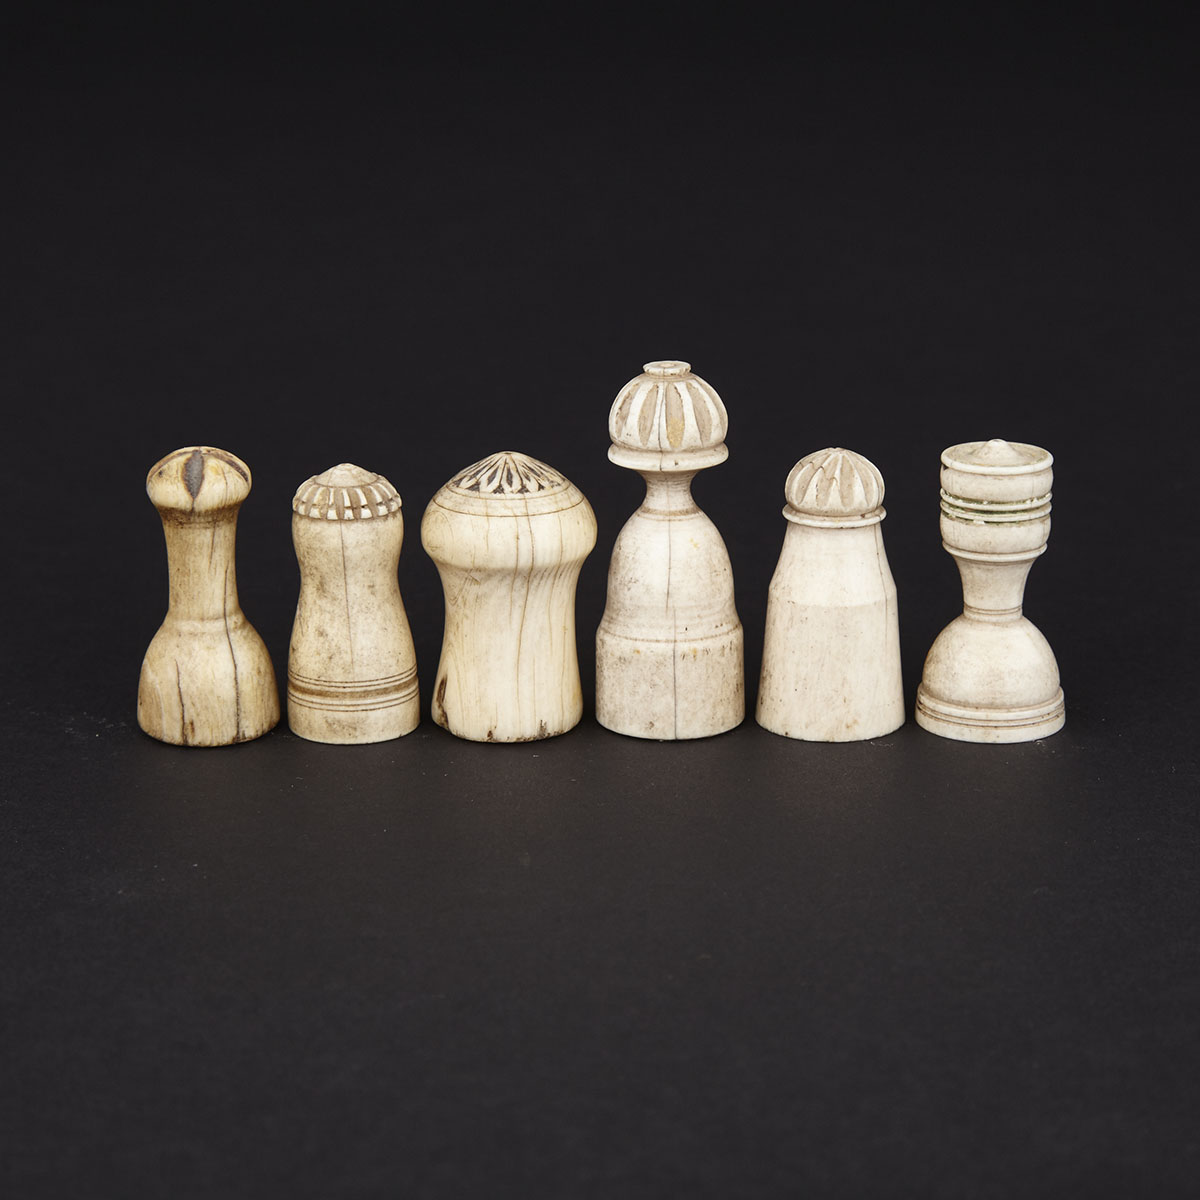 Group of Six Arab Islamic Ivory and Bone Chess Pieces, 18th century and earlier